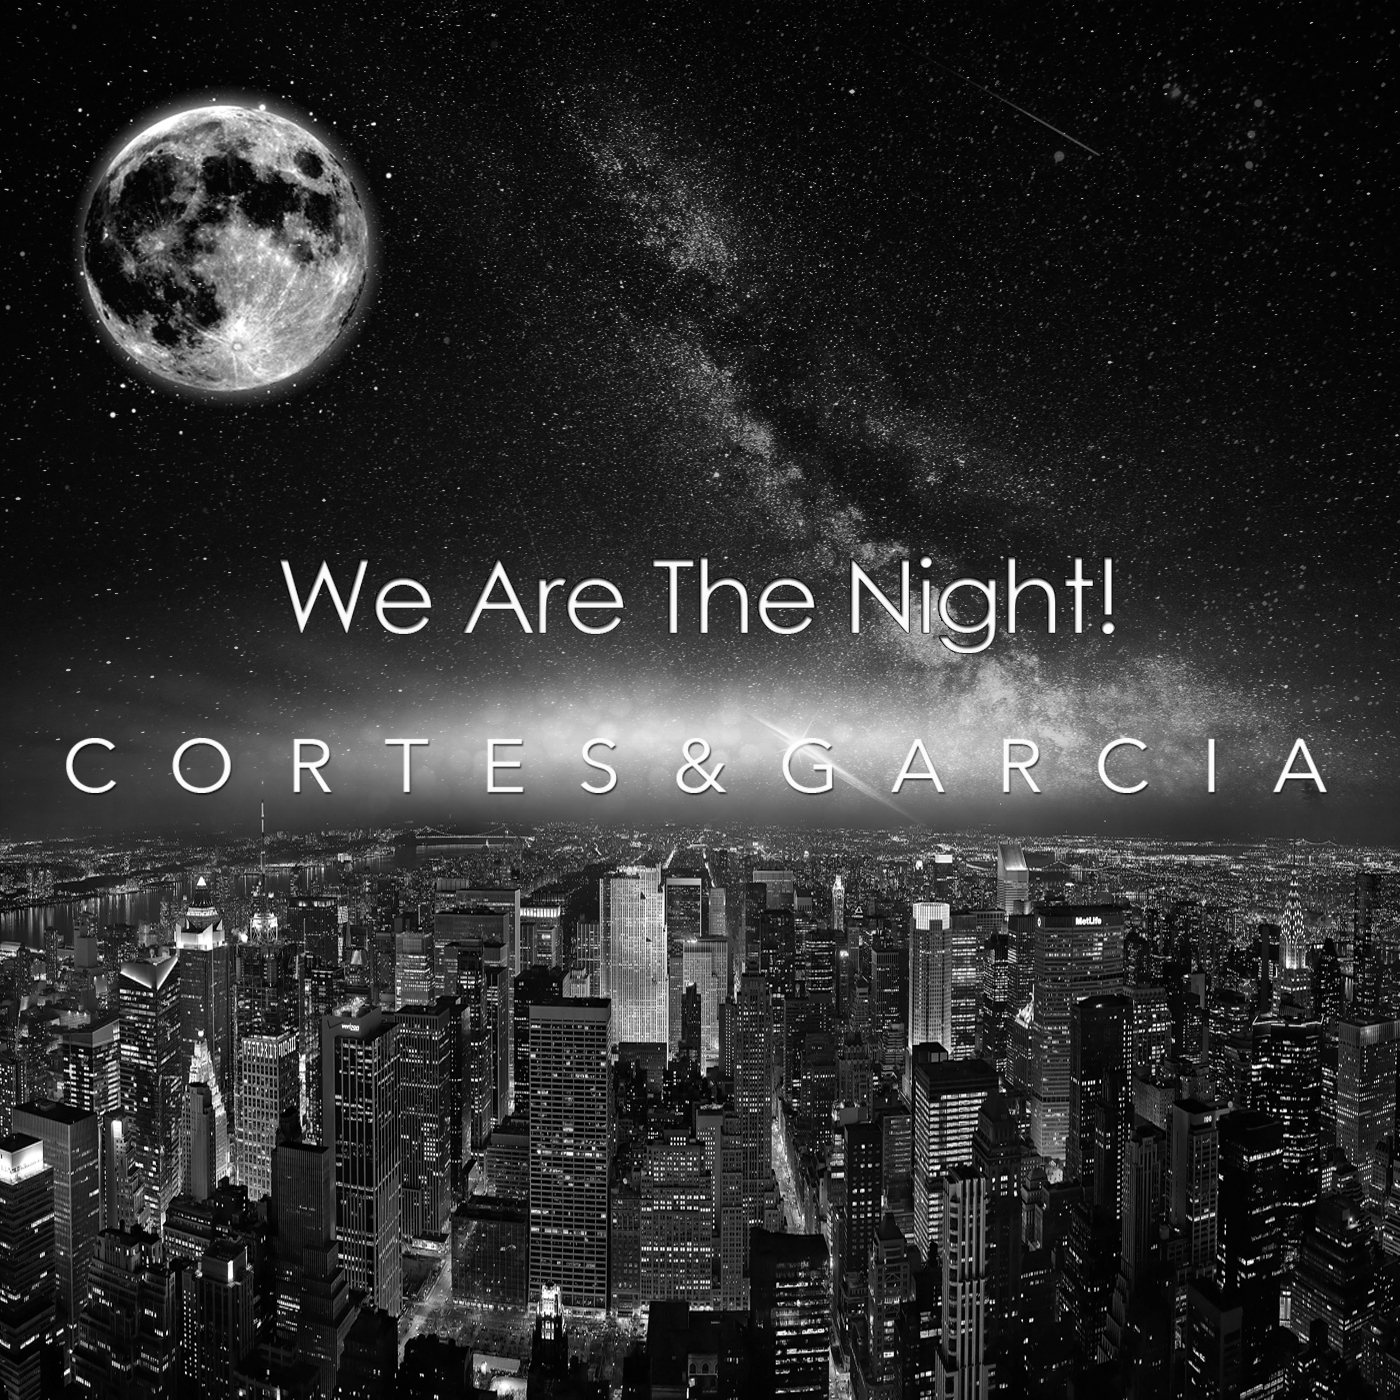 Cortes & Garcia » We Are The Night! C&G | Cortes & Garcia » We Are The Night! C&G | Every month Stefano Cortes & Gio Garcia presents: We Are The Night 